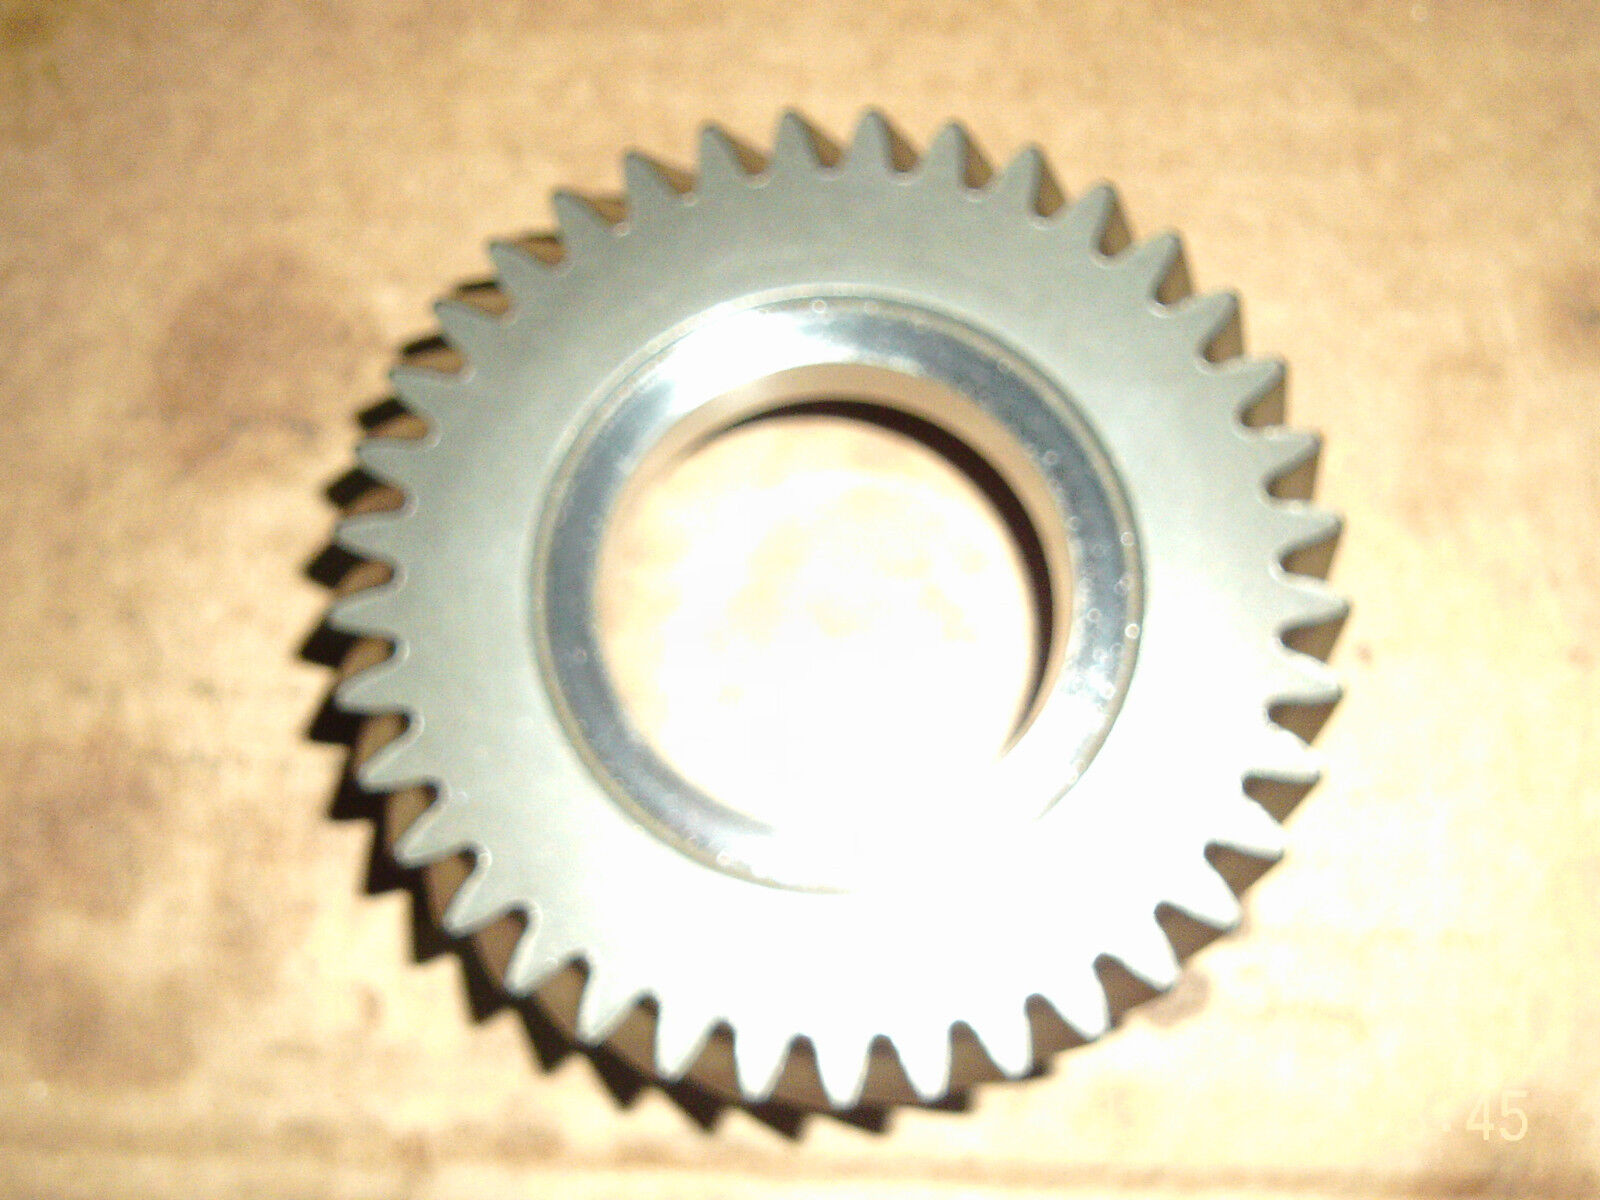 Used Saturn Automatic Transmissions And Related Parts For Sale Page 8 Vue Transmission Belt Gm Taat Mp6 Third Drive Gear Assembly Sl1 Sc1